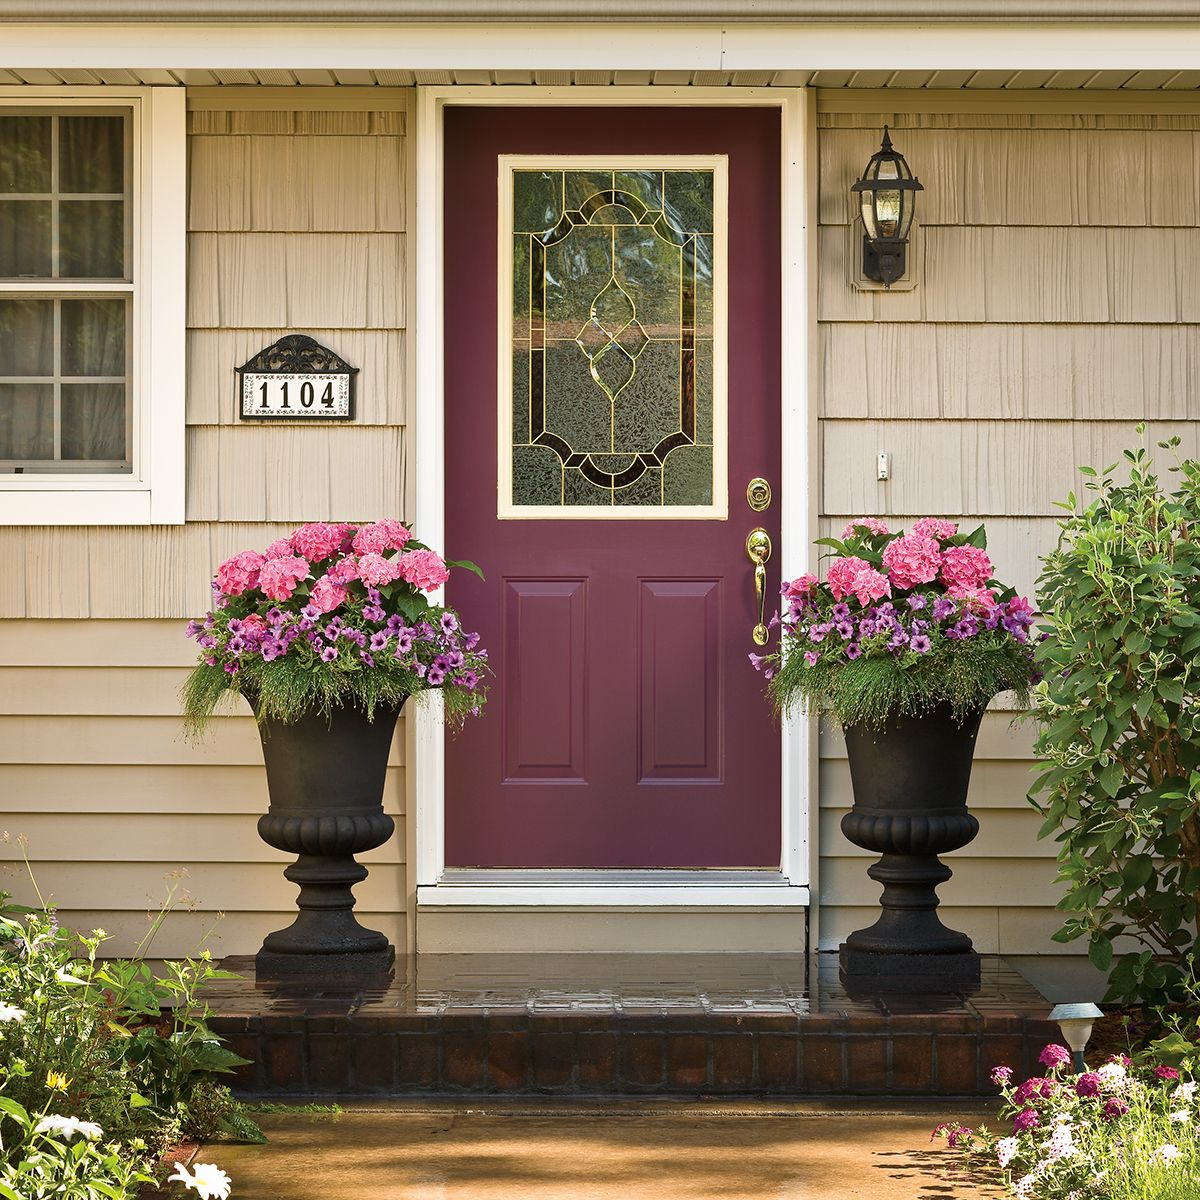 By Using Large Urns That Can Hold A Lot Of Soil It Opens Up The Possibilities To Growing Large Front Door Plants Patio Container Gardening Potted Plants Patio